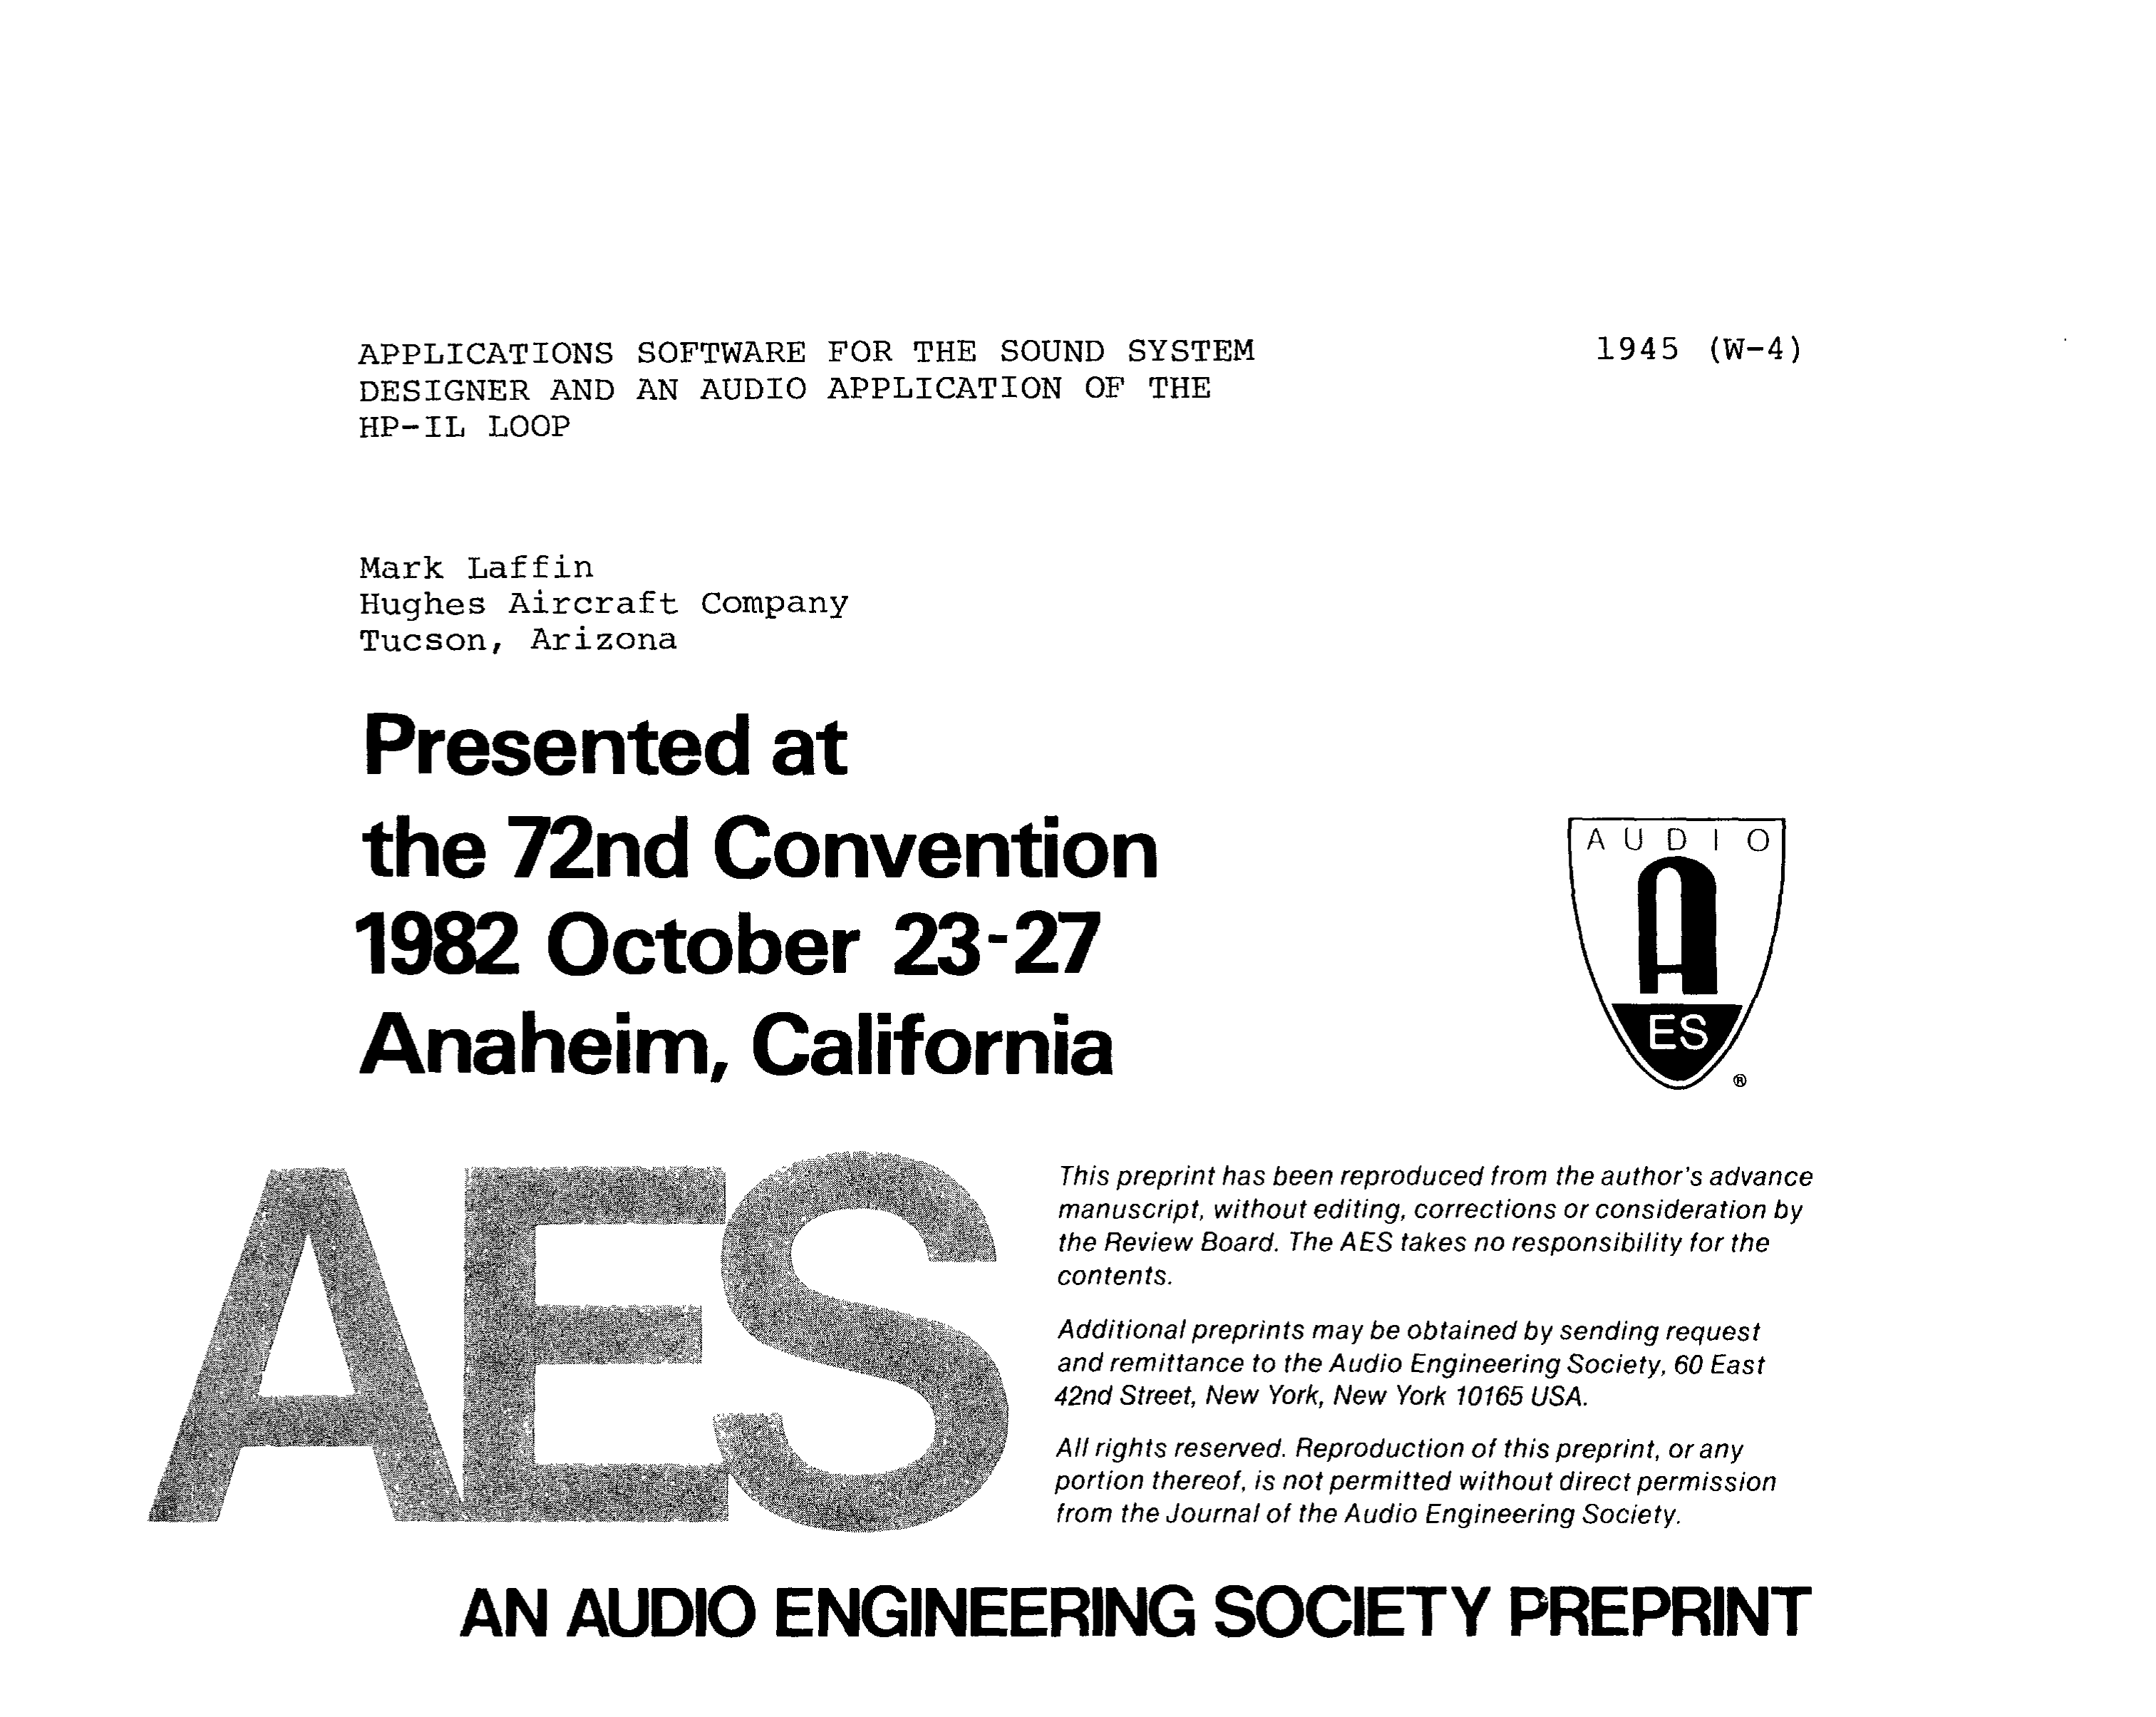 AES E-Library » Applications Software for the Sound System Designer